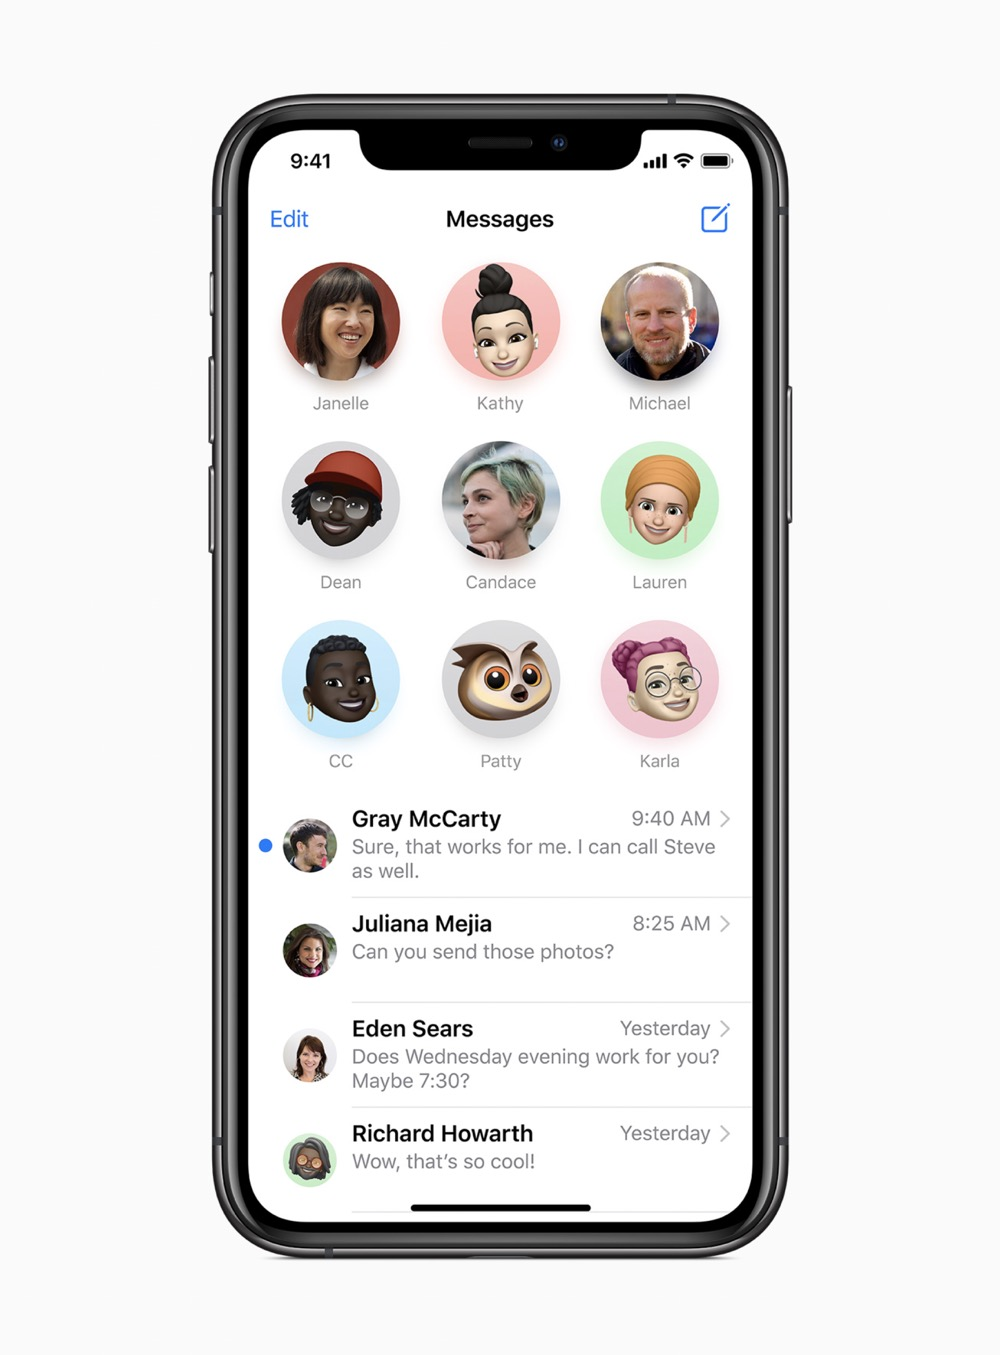 Apple ios14 pin conversations messages screen 06222020